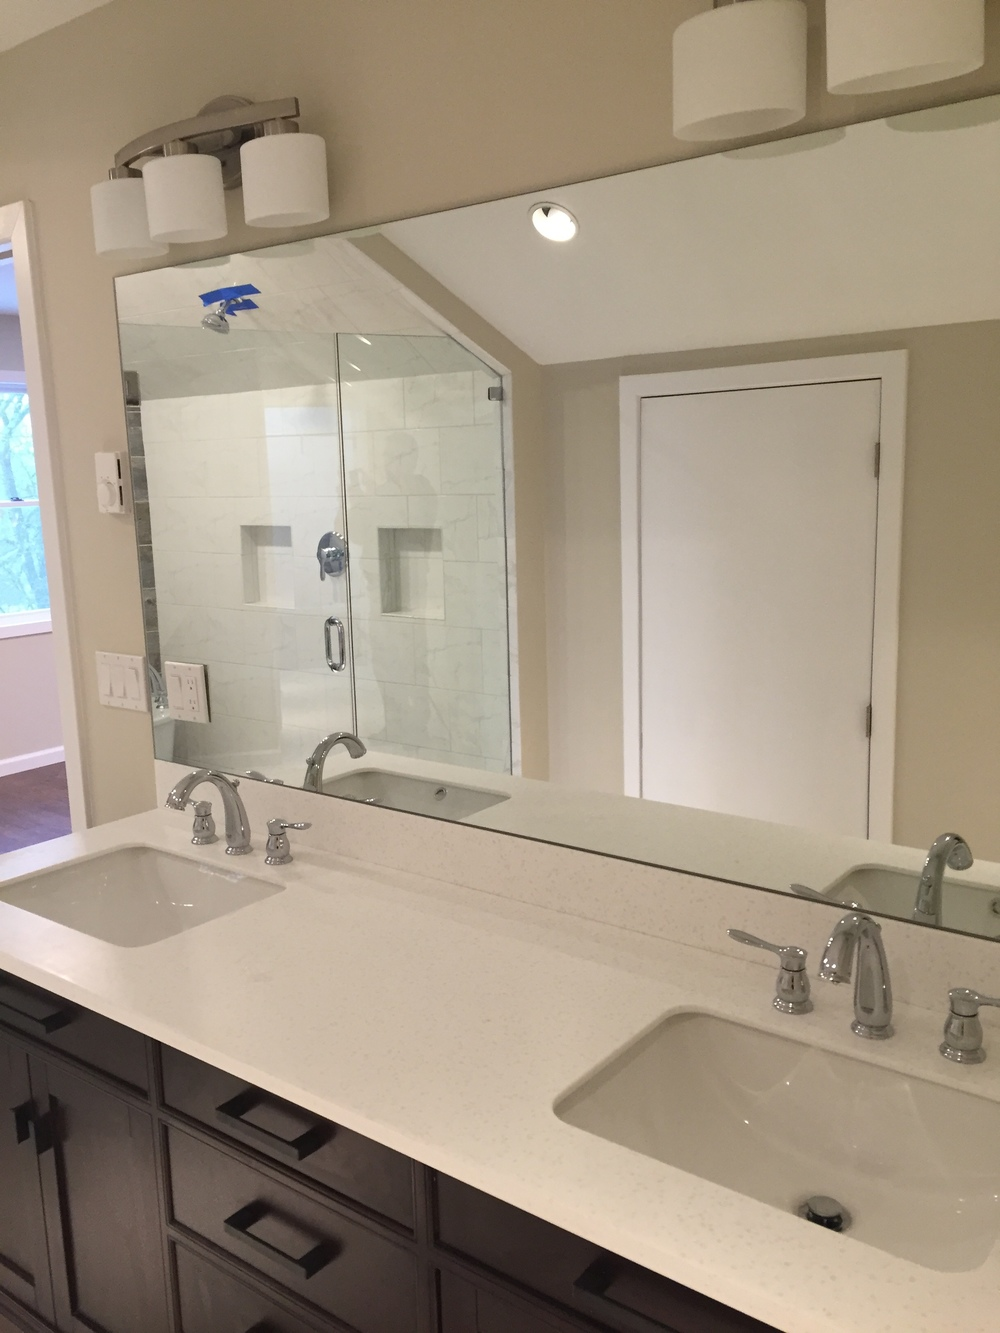 New Vanity in Bathroom Remodel in Waterford CT | Shaw Remodeling